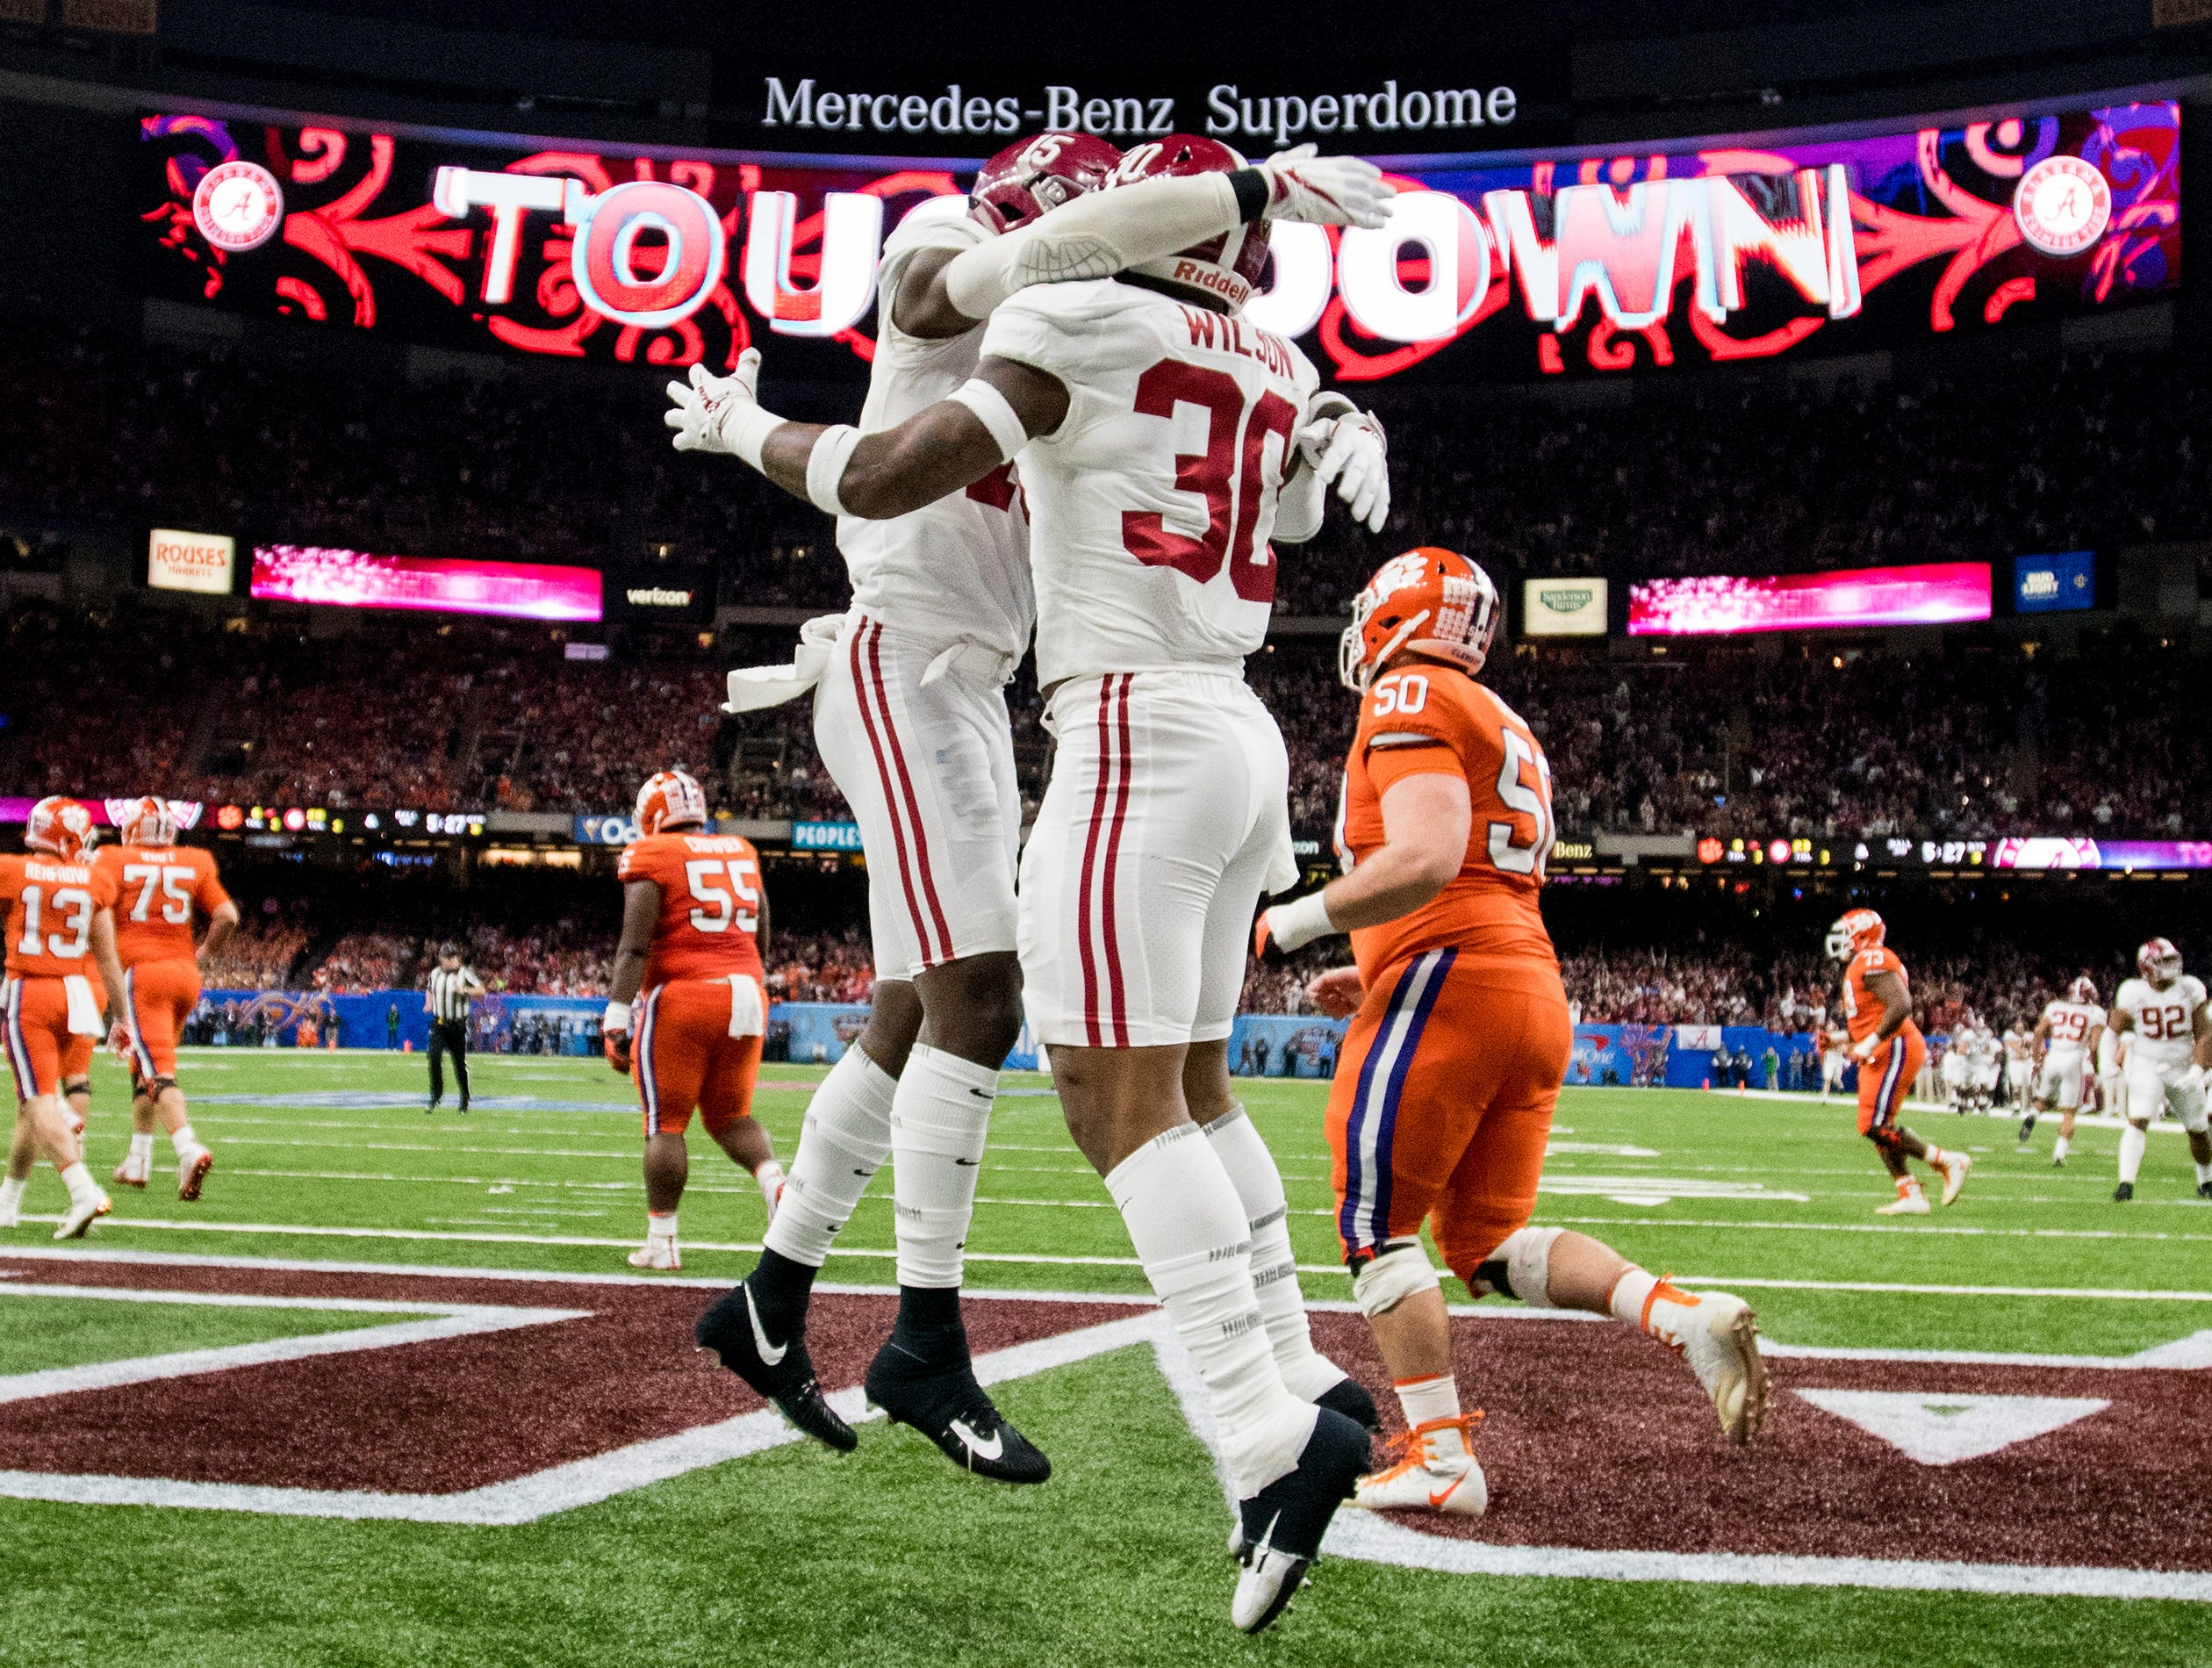 Alabama linebacker Mack Wilson (30) celebrates his interception touchdown against Clemson in the Sugar Bowl at the Superdome in New Orleans, La. on Monday January 1, 2018.